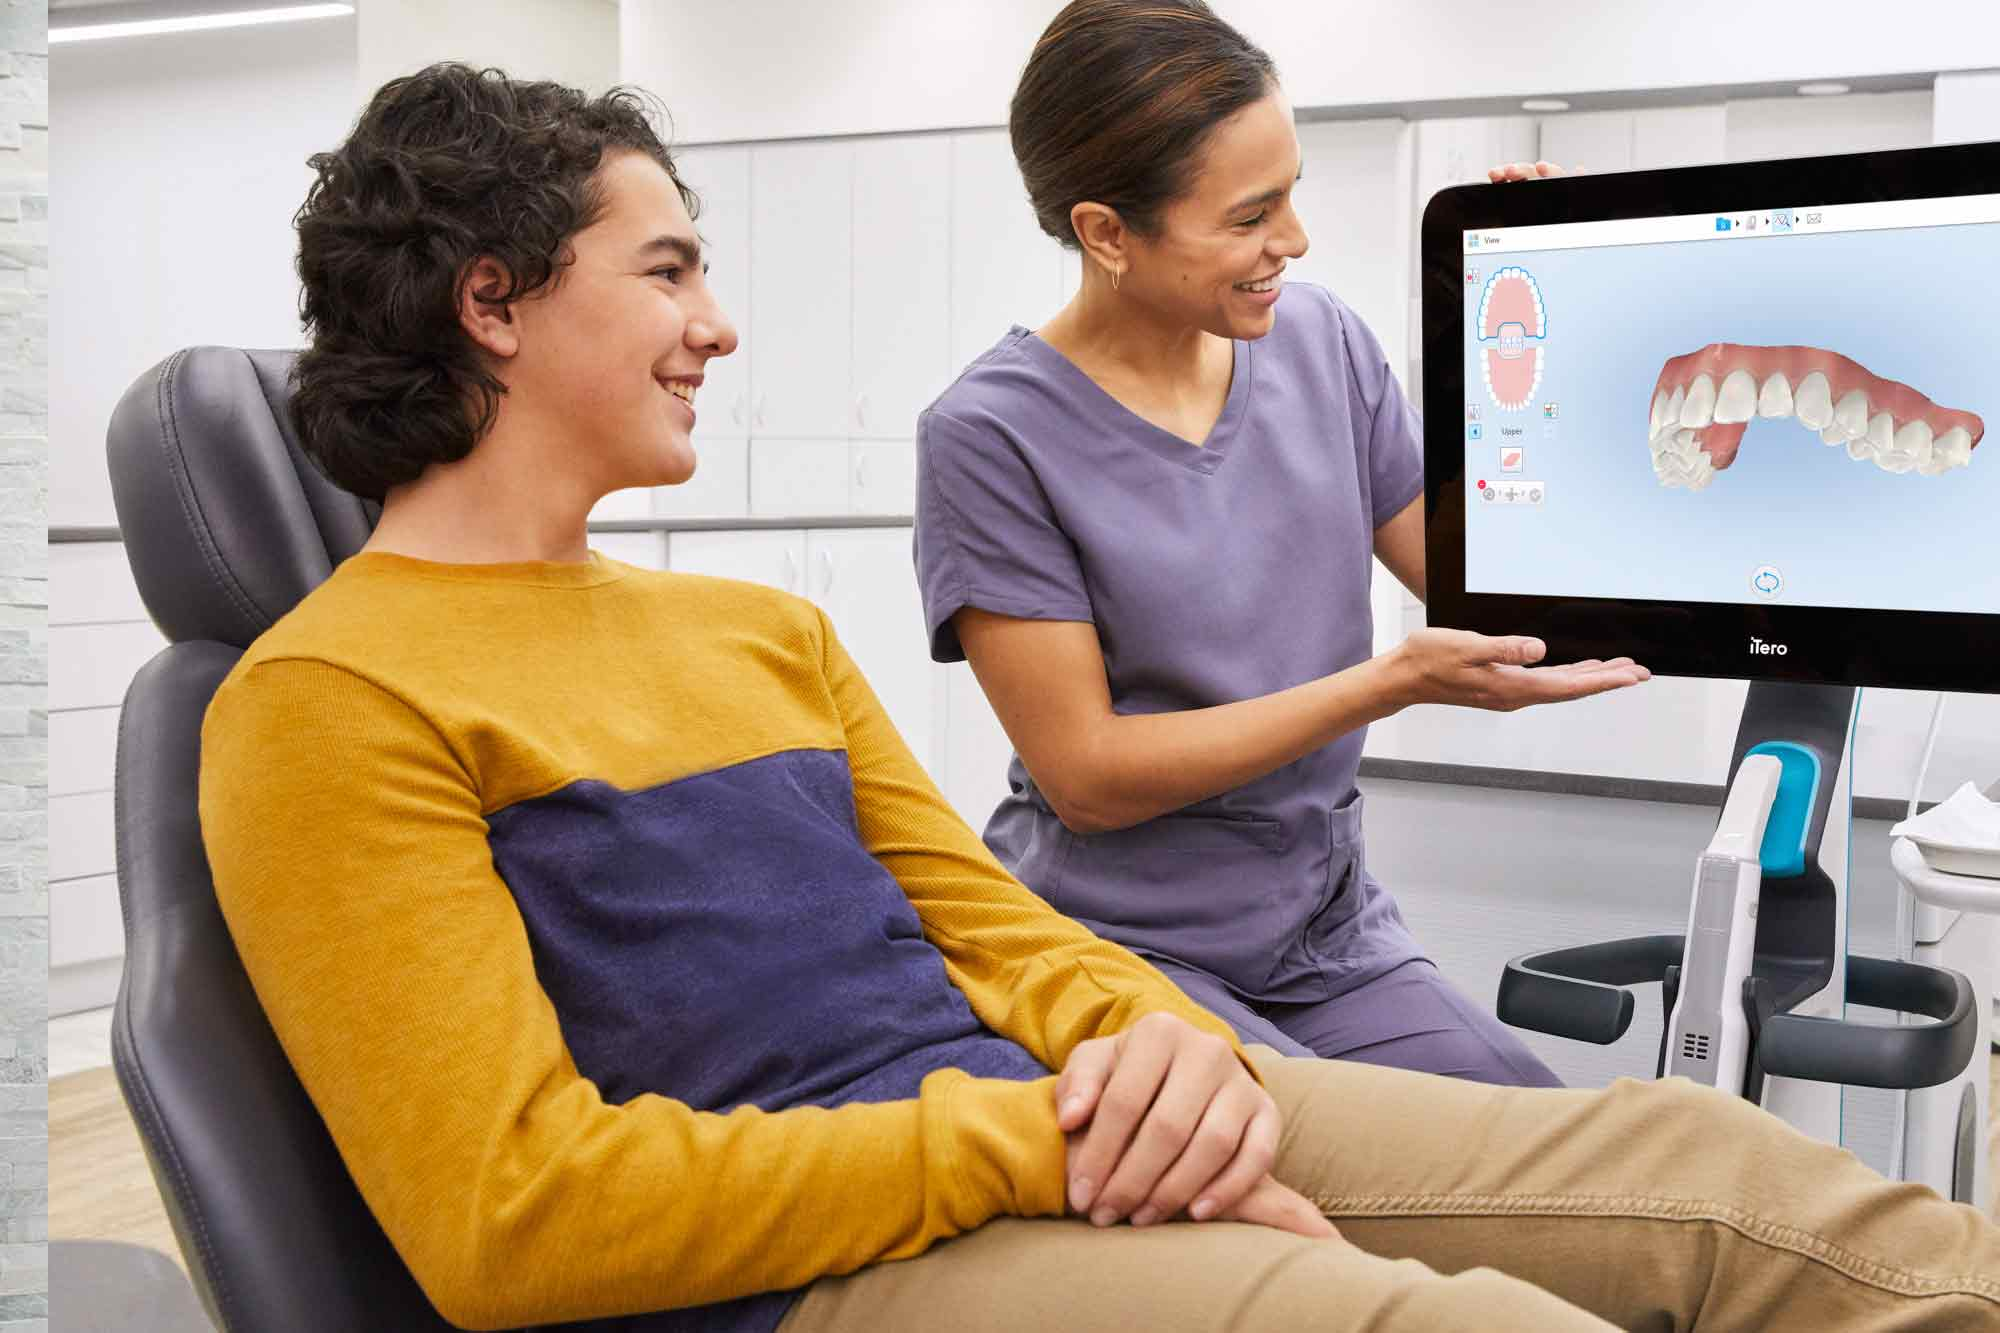 Align Technology today announced the availability of its new scanner and imaging systems, the Itero Element Plus Series